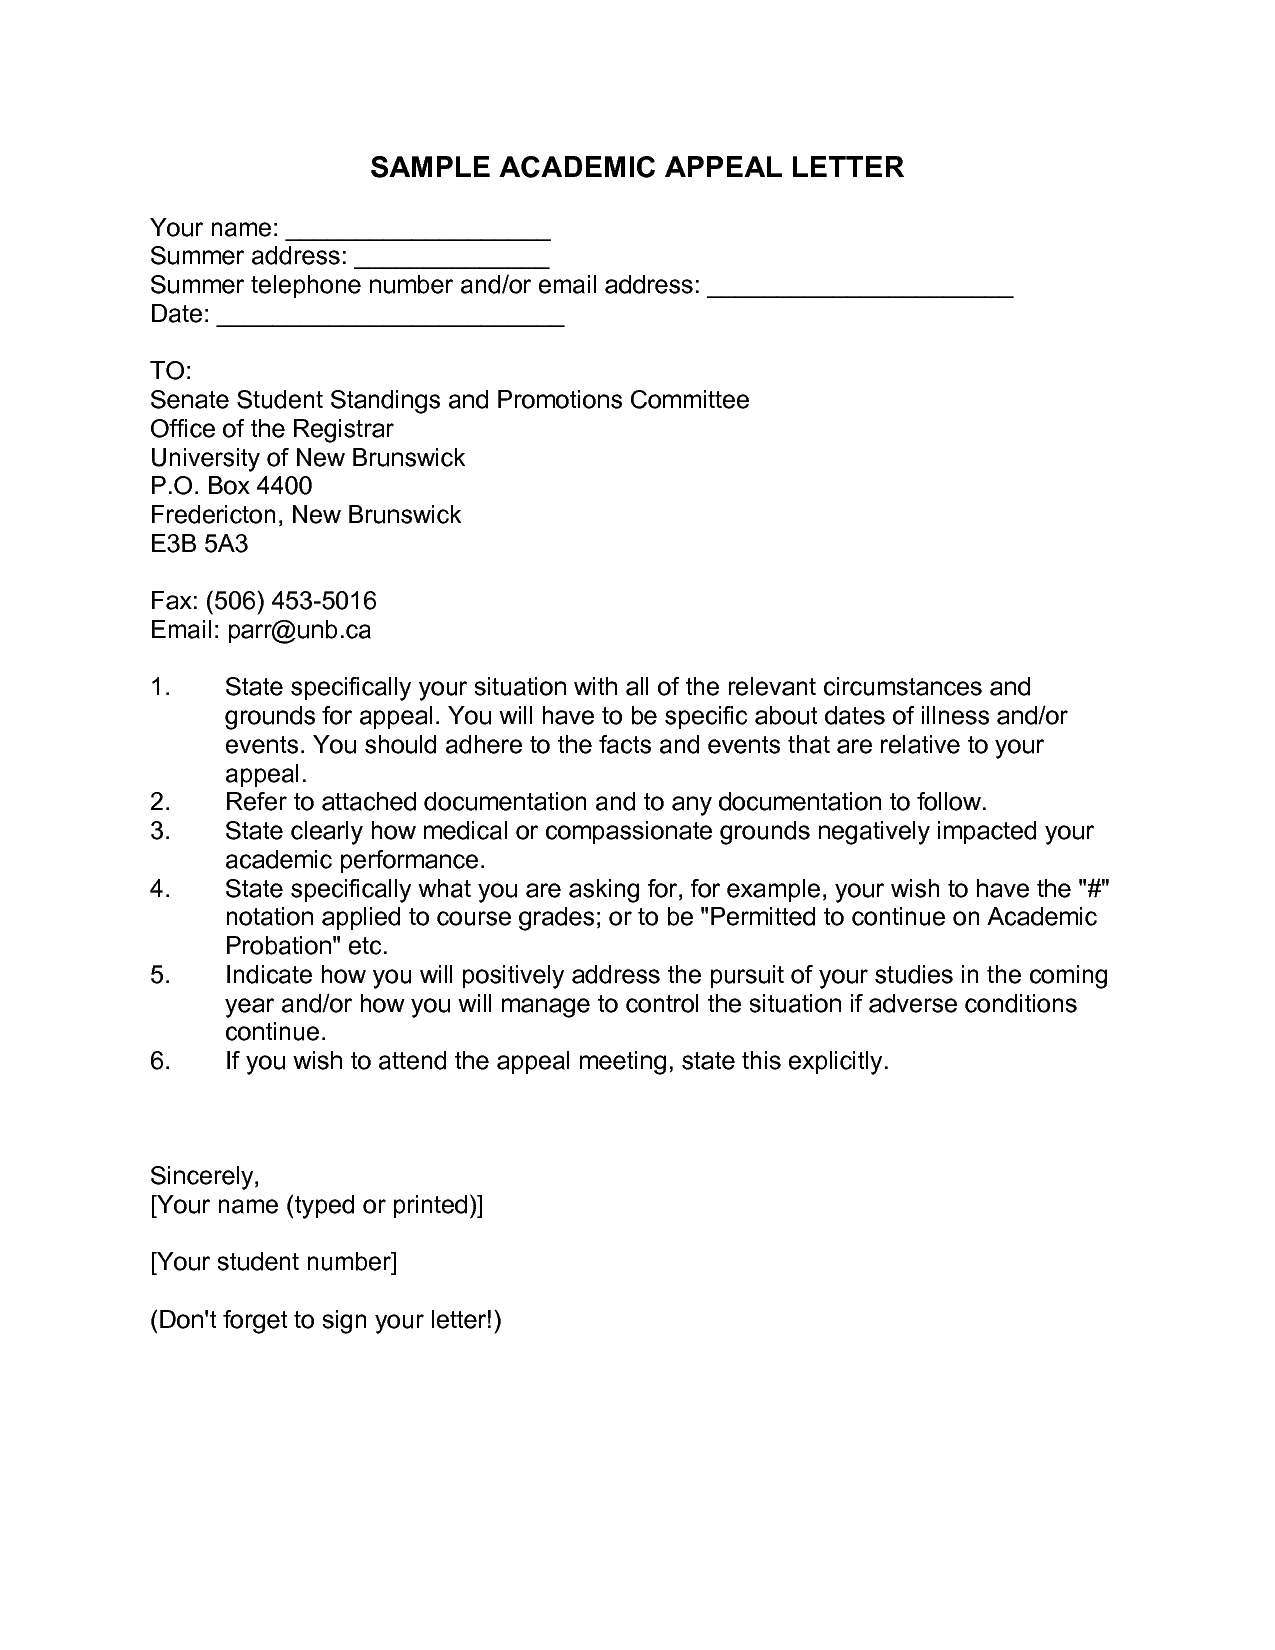 sample academic appeal letter format